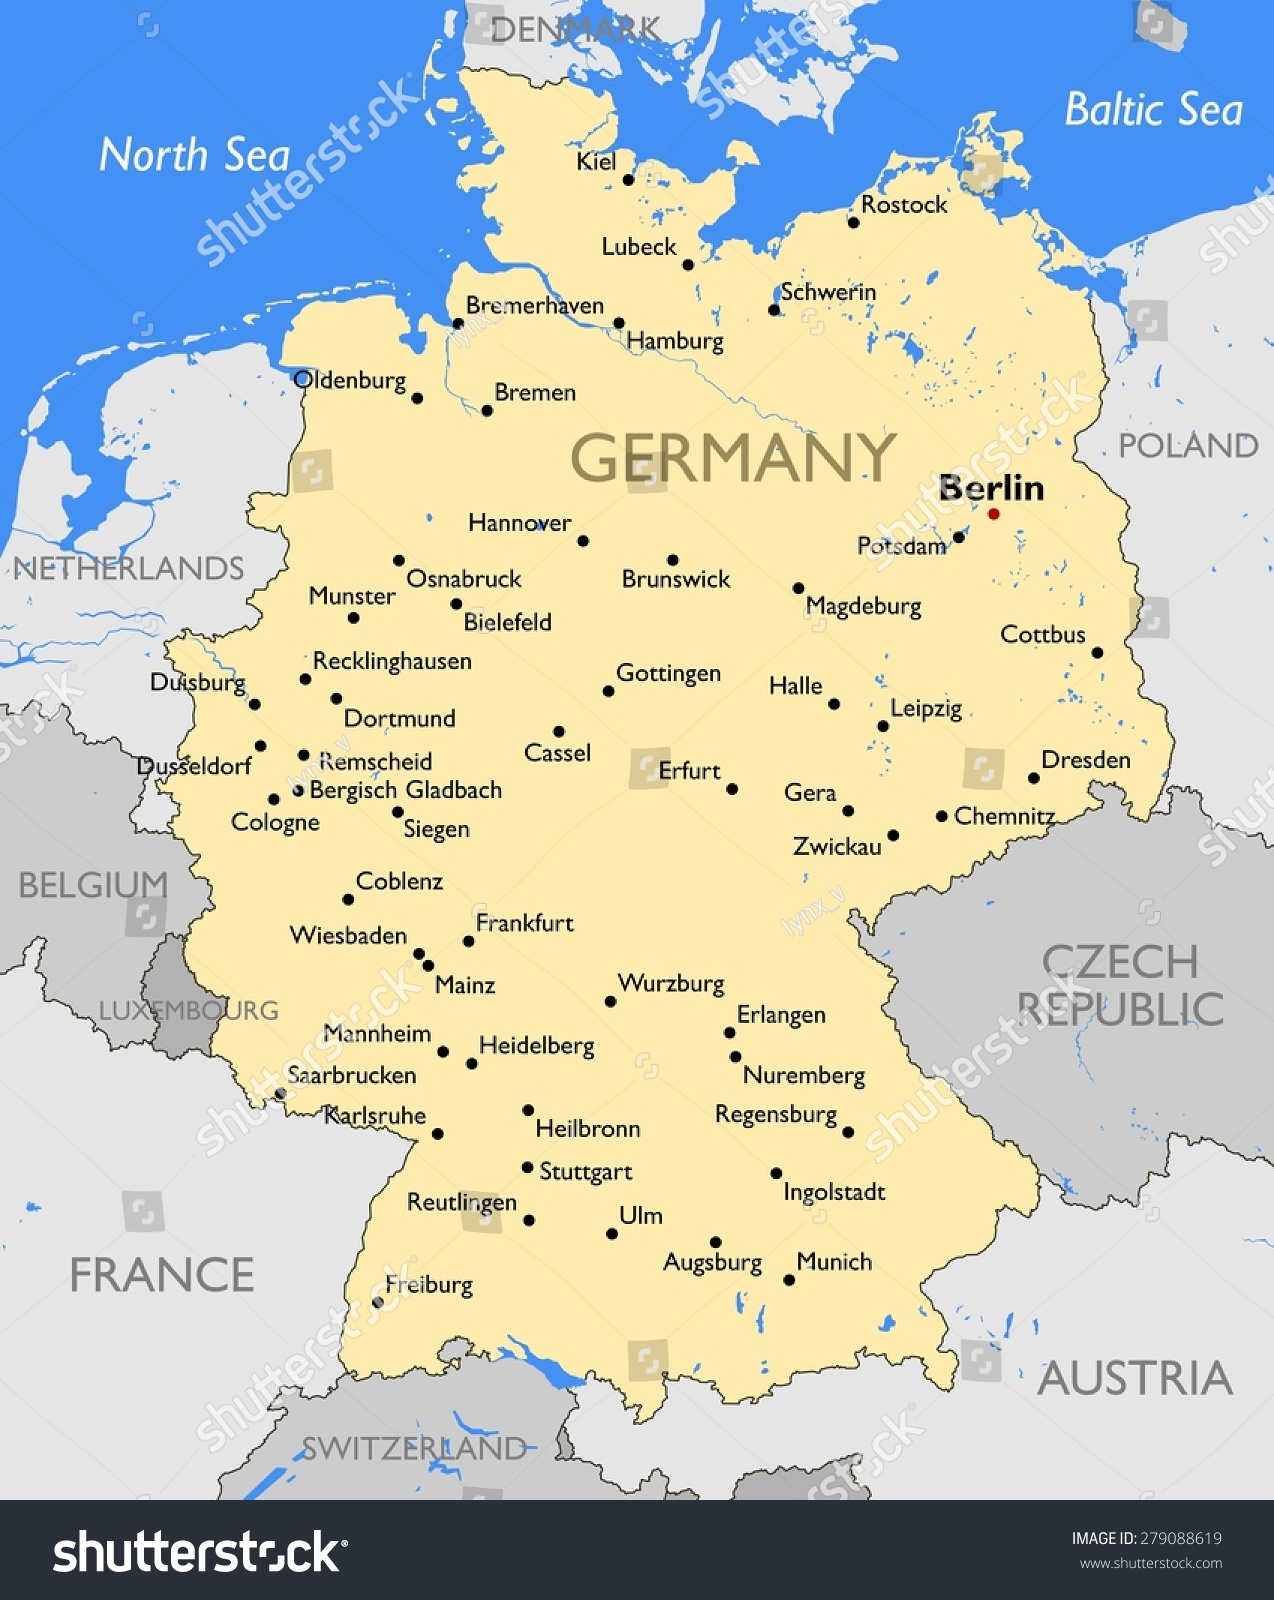 Germany Map Stock Illustration Shutterstock - Germany map view